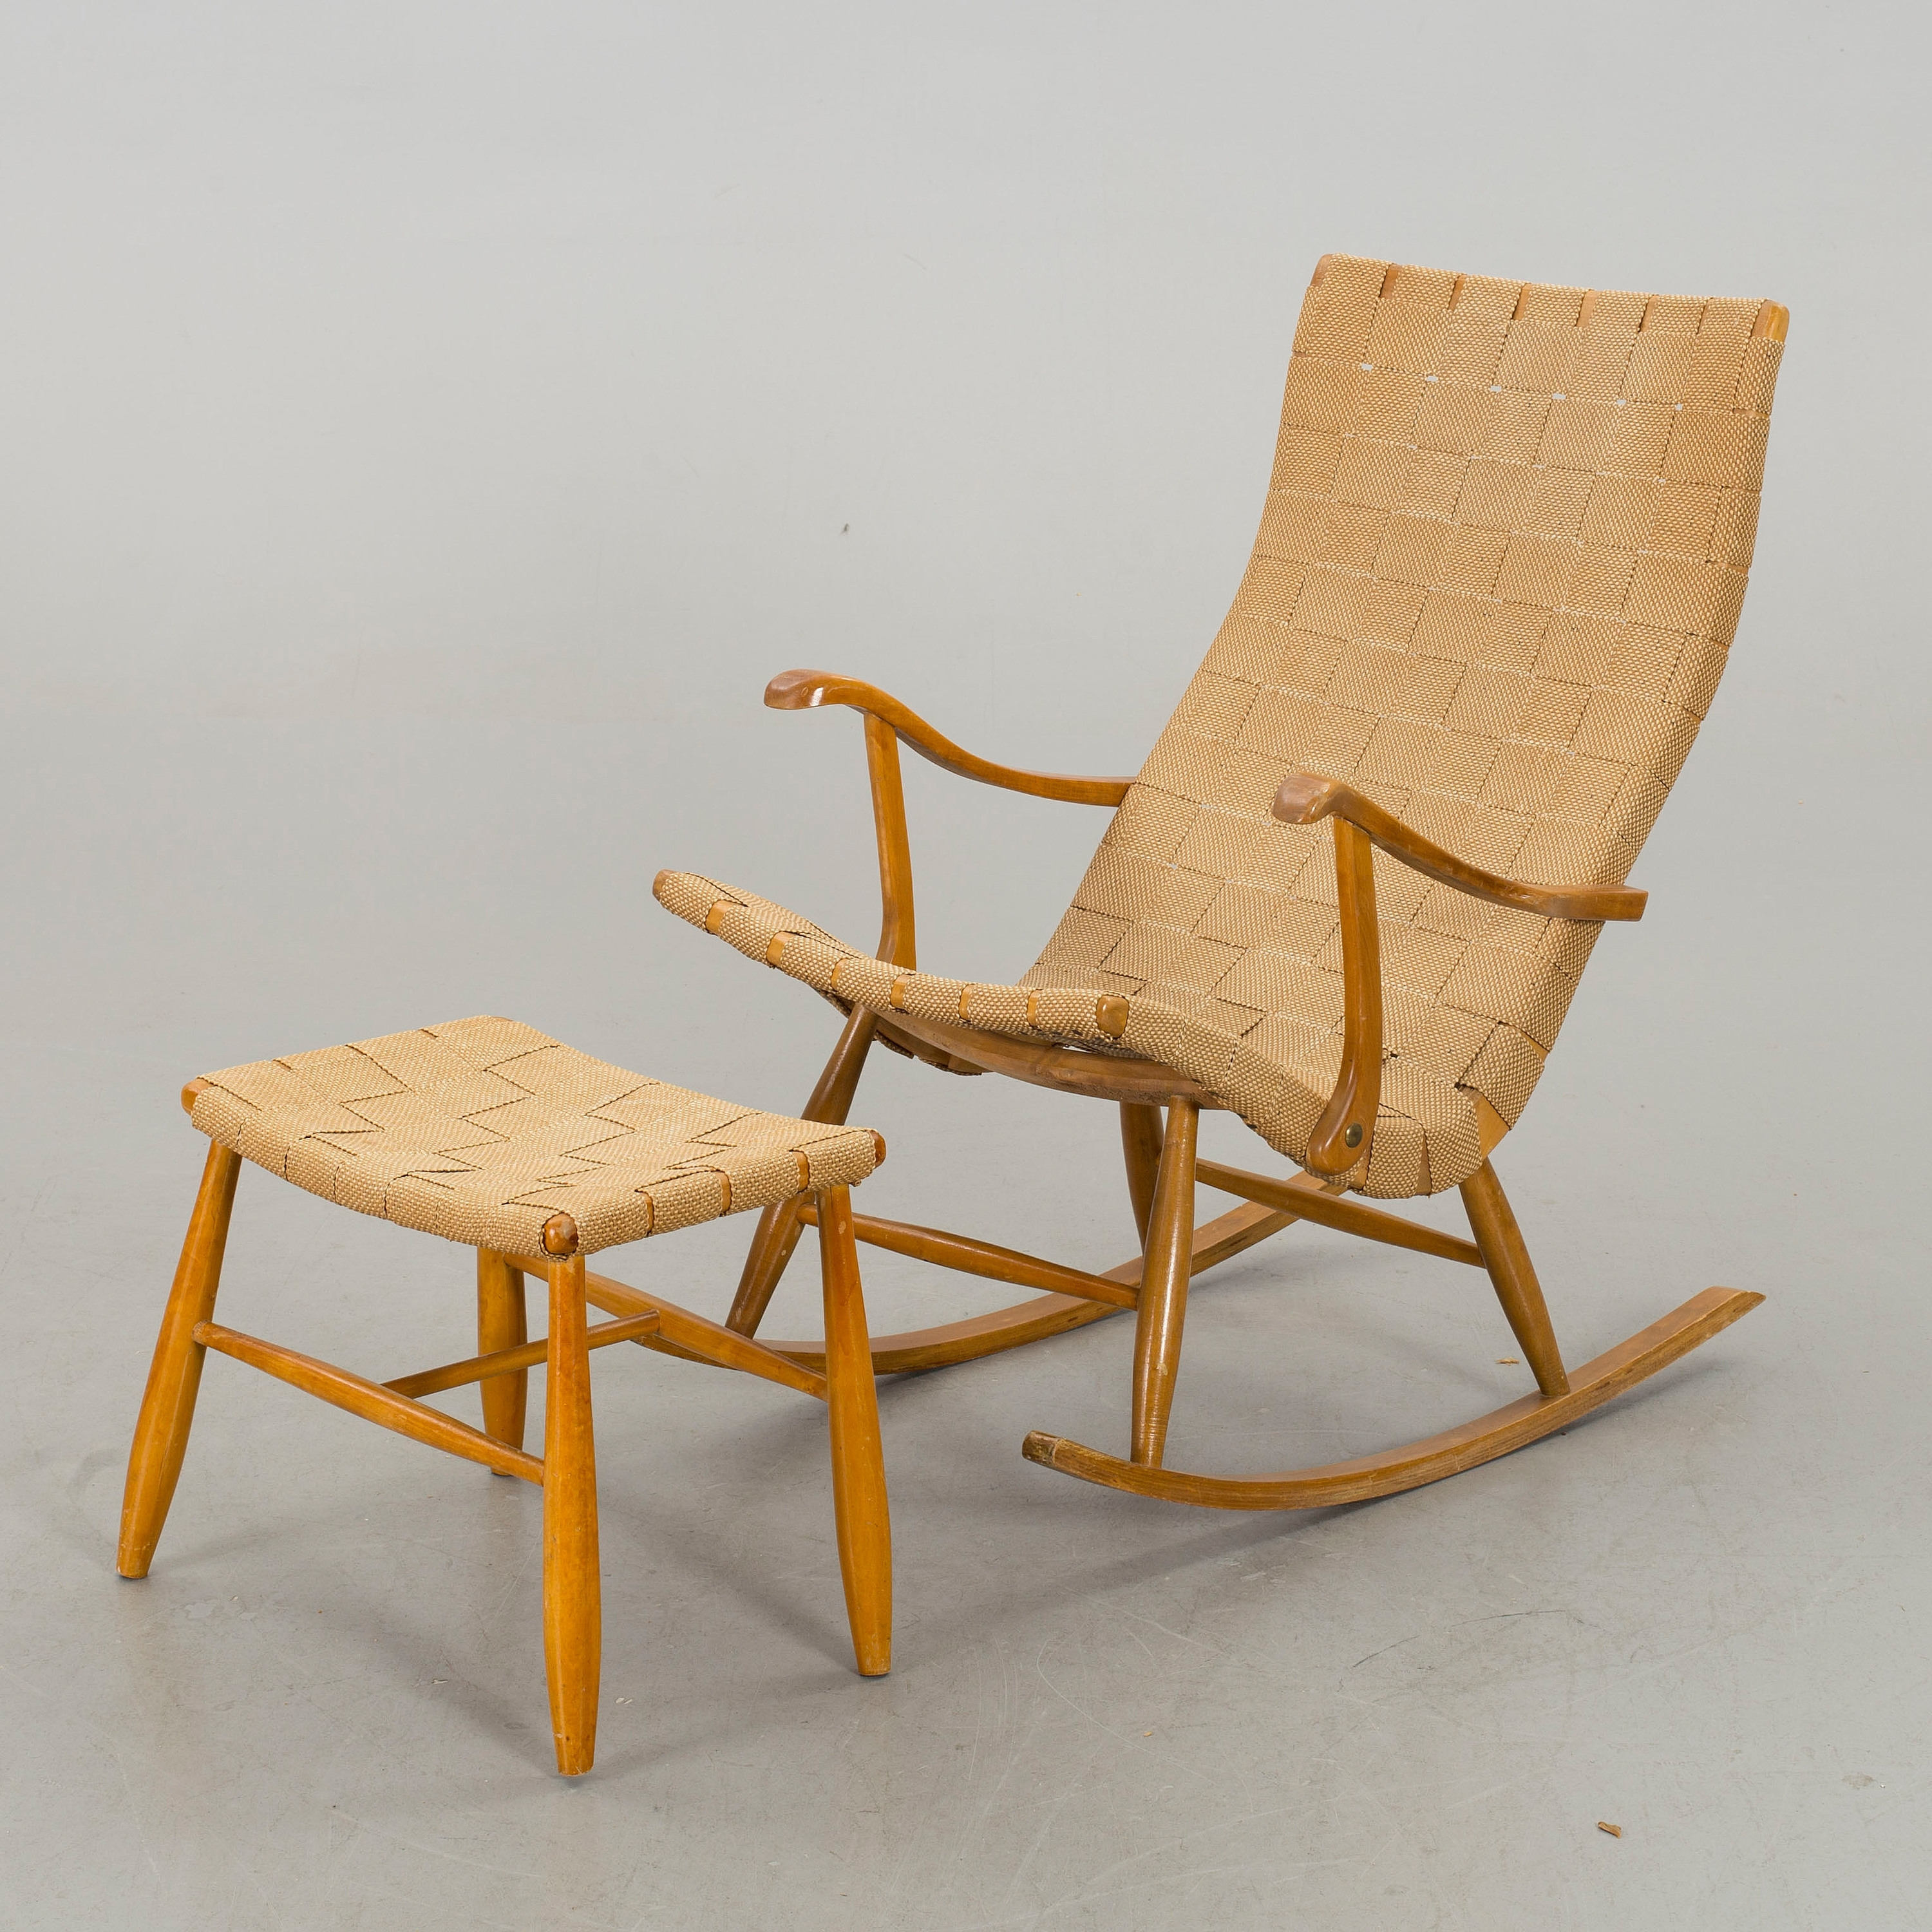 A Rocking Chair With Footstool, 1940/50S, – Bukowskis Intended For Rocking Chairs With Footstool (#2 of 15)